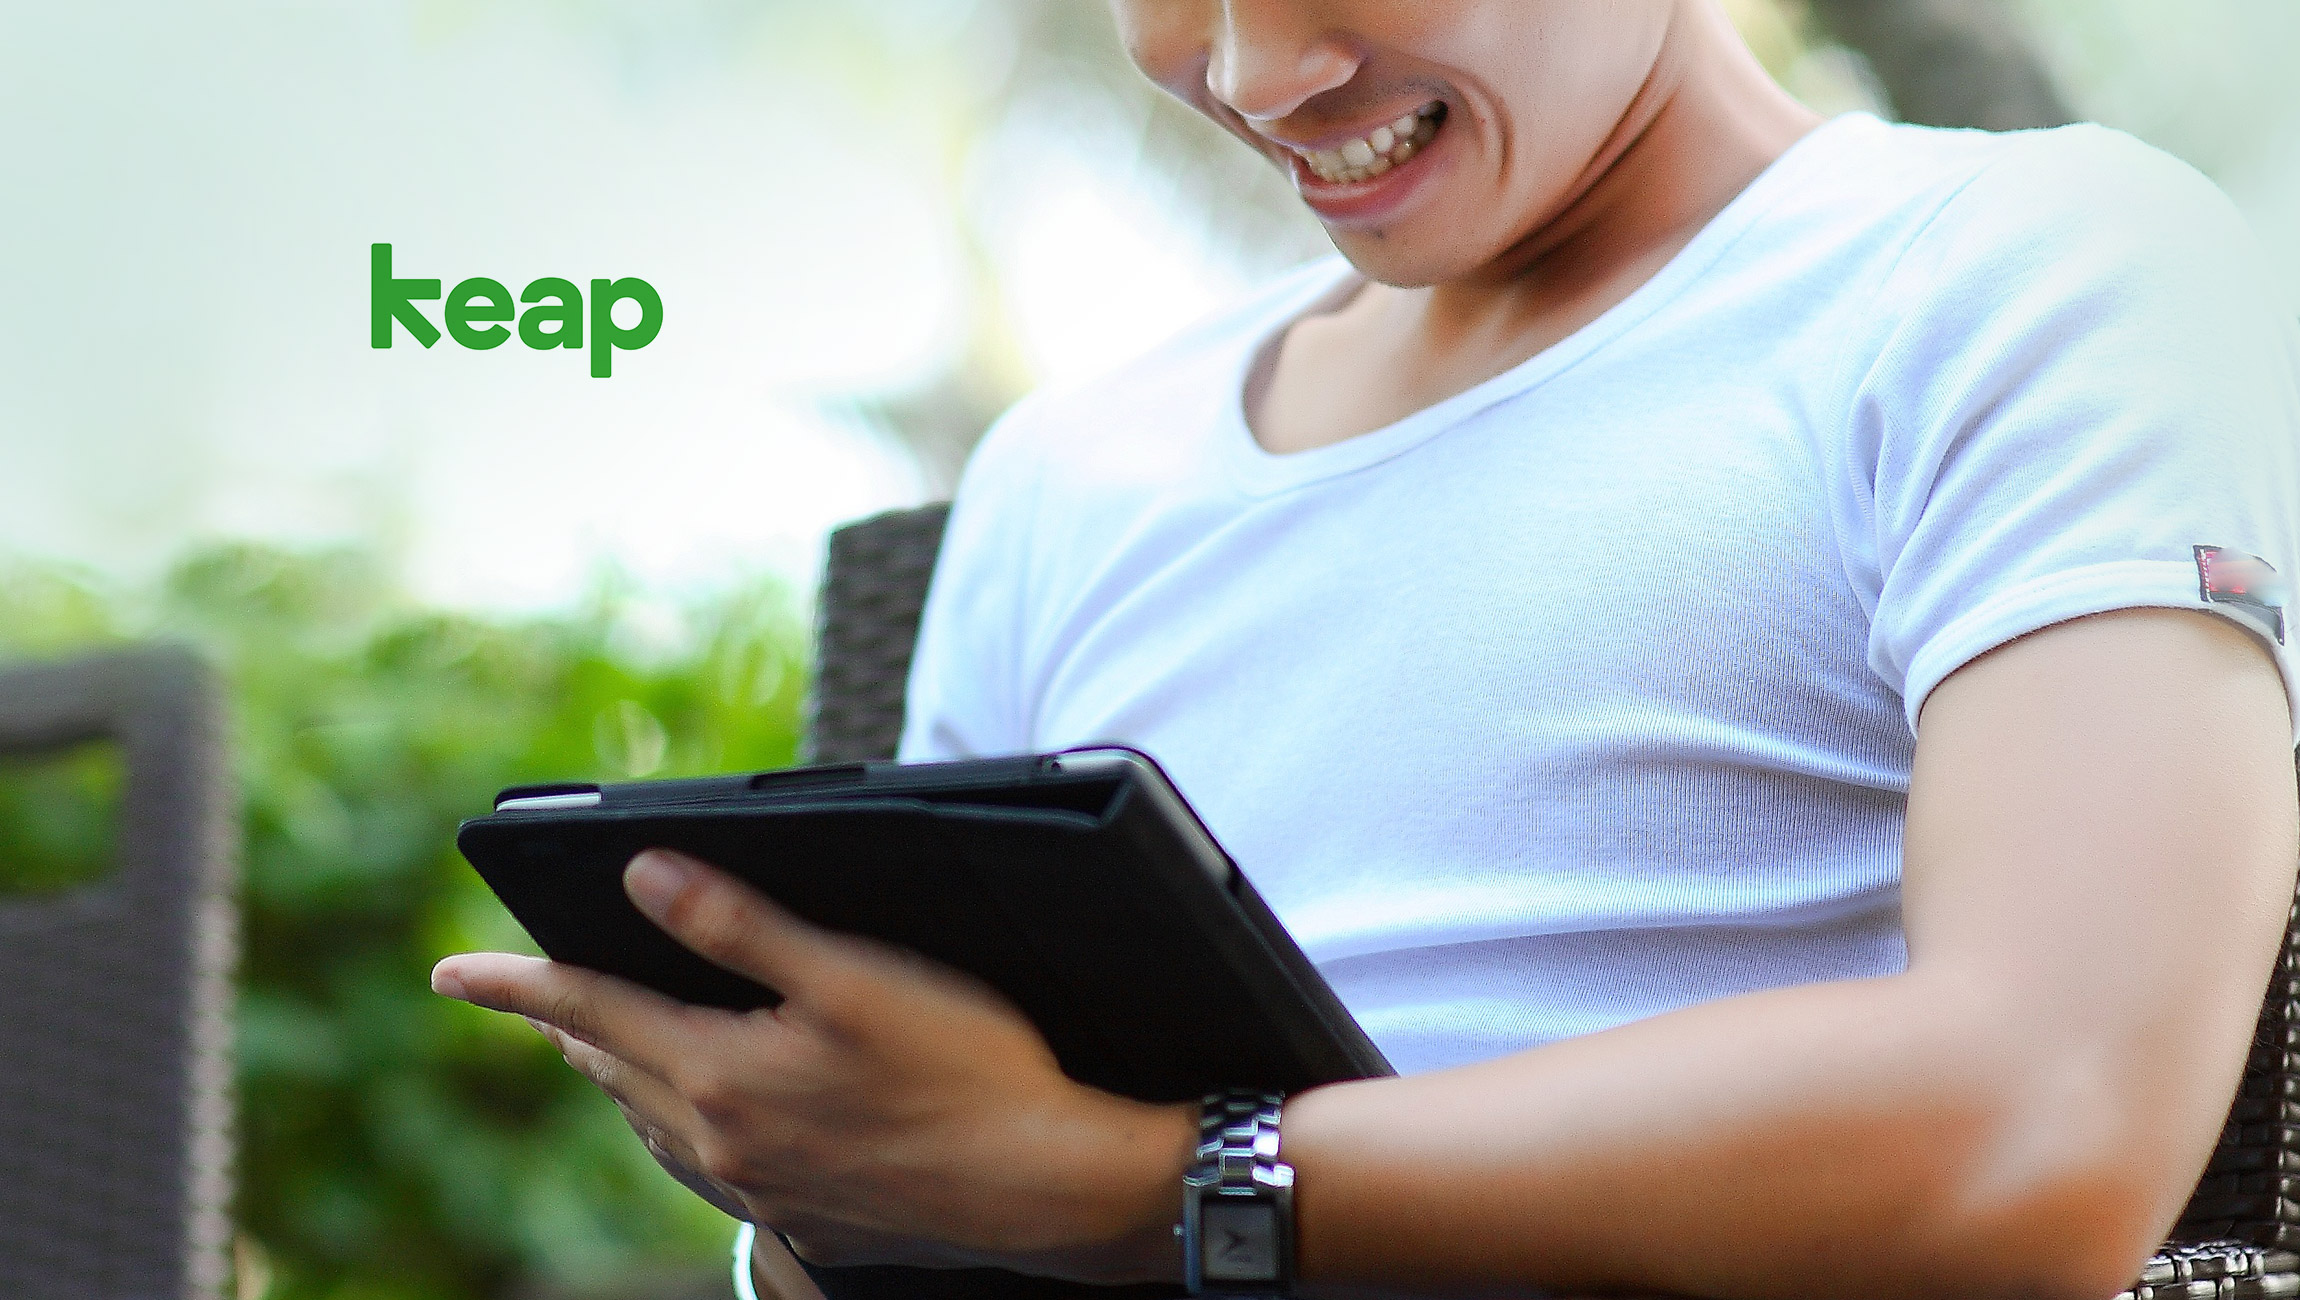 Keap's New E-commerce Capabilities Empower Small Businesses to Scale with Ease